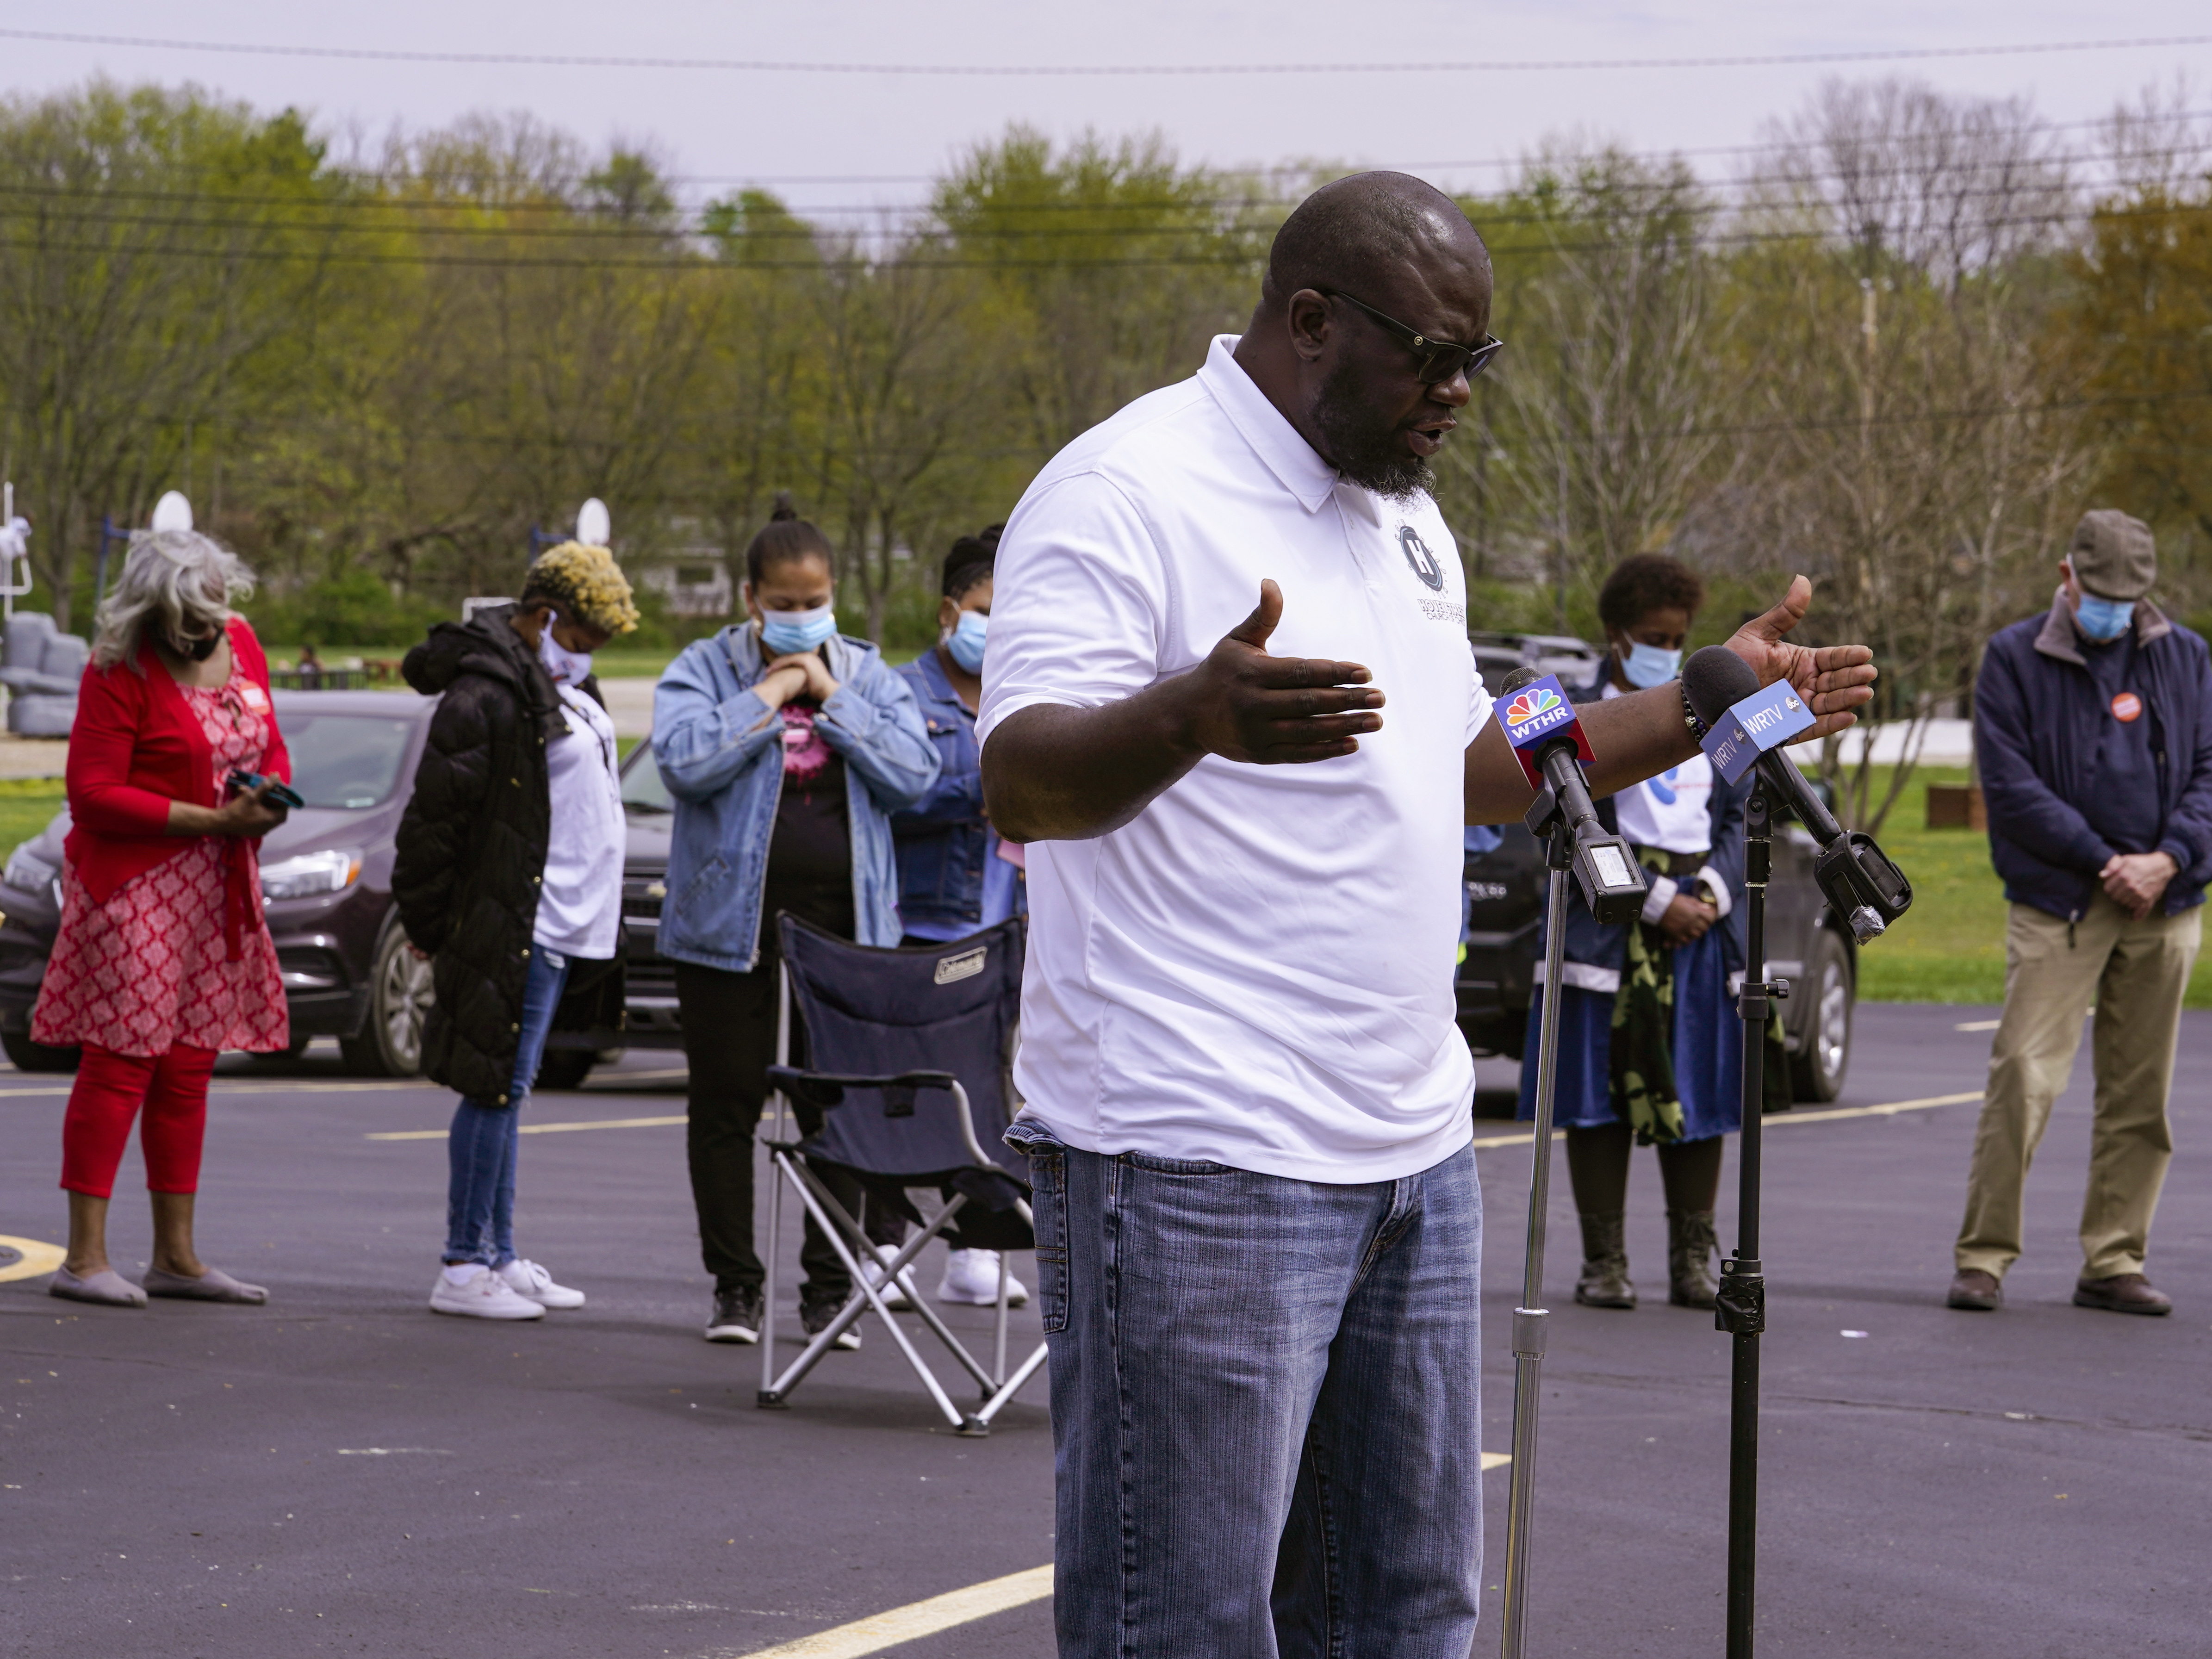 Pastor Denell Howard leads a prayer Saturday at a vigil at Olivet Missionary Baptist Church in Indianapolis for the victims of the shooting Thursday at a FedEx facility.